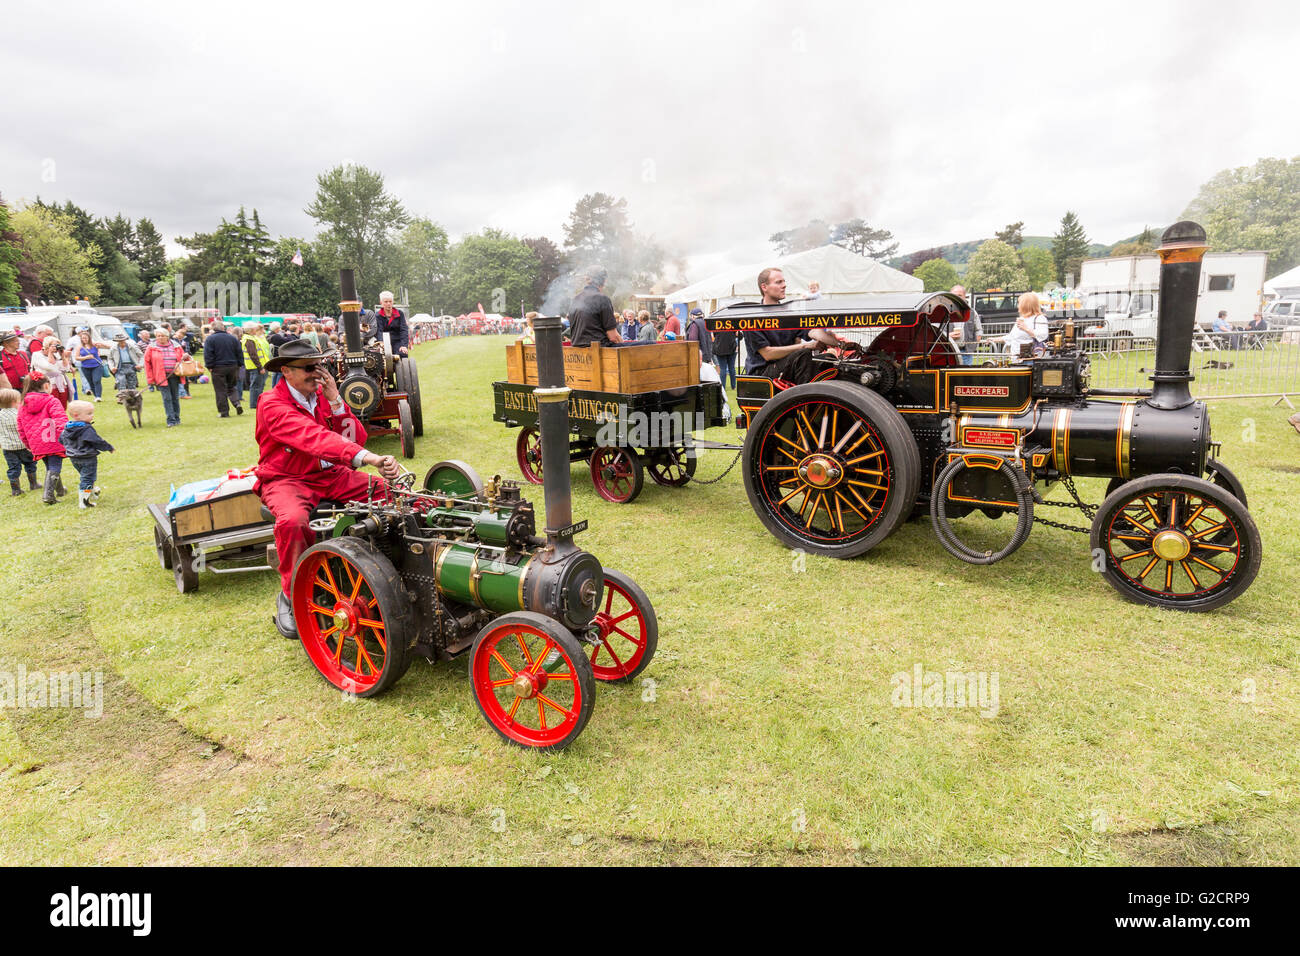 Steam engines at fair, Abergavenny, Wales, UK - Stock Image